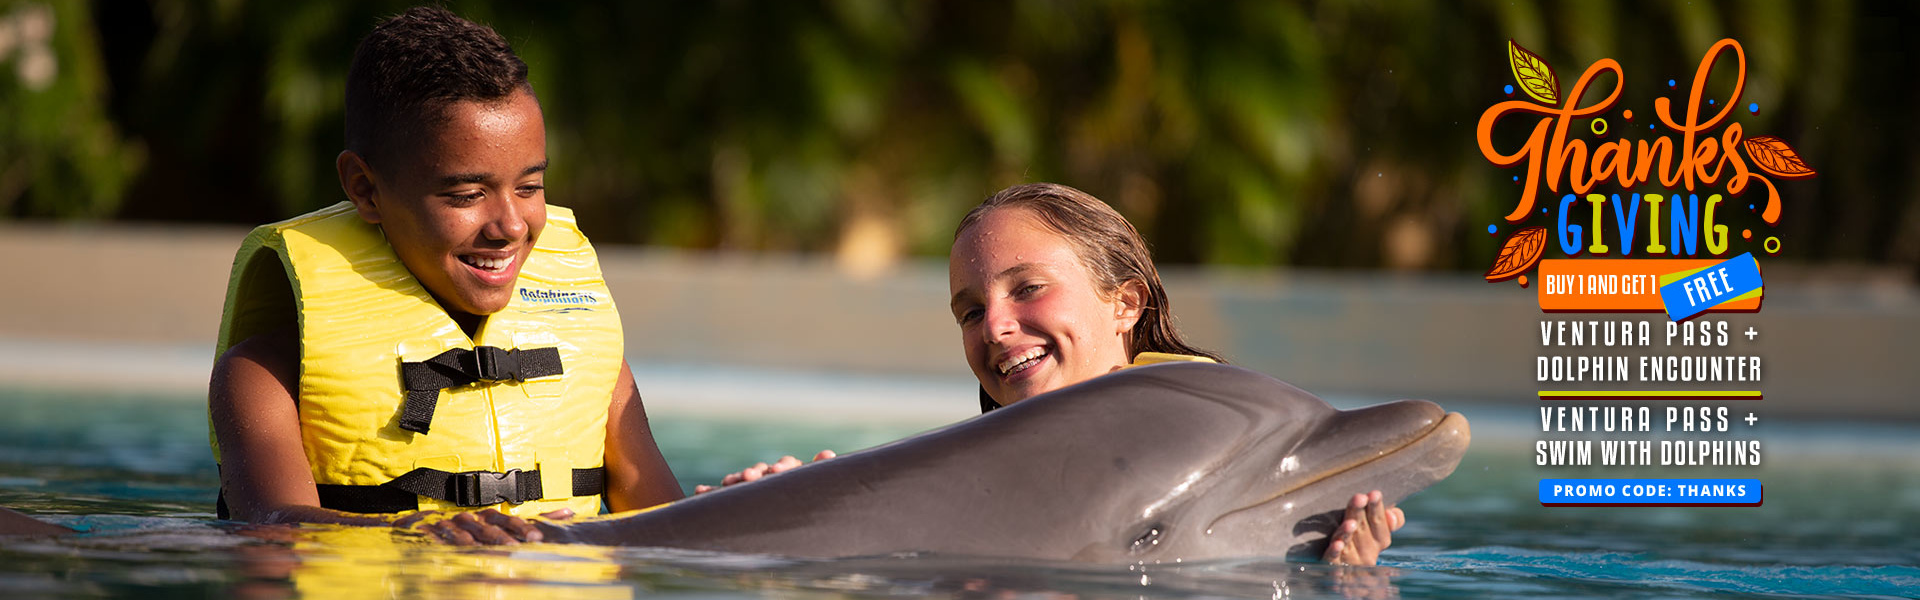 Thanksgiving Deal Swimming with Dolphin at Ventura park Cancun